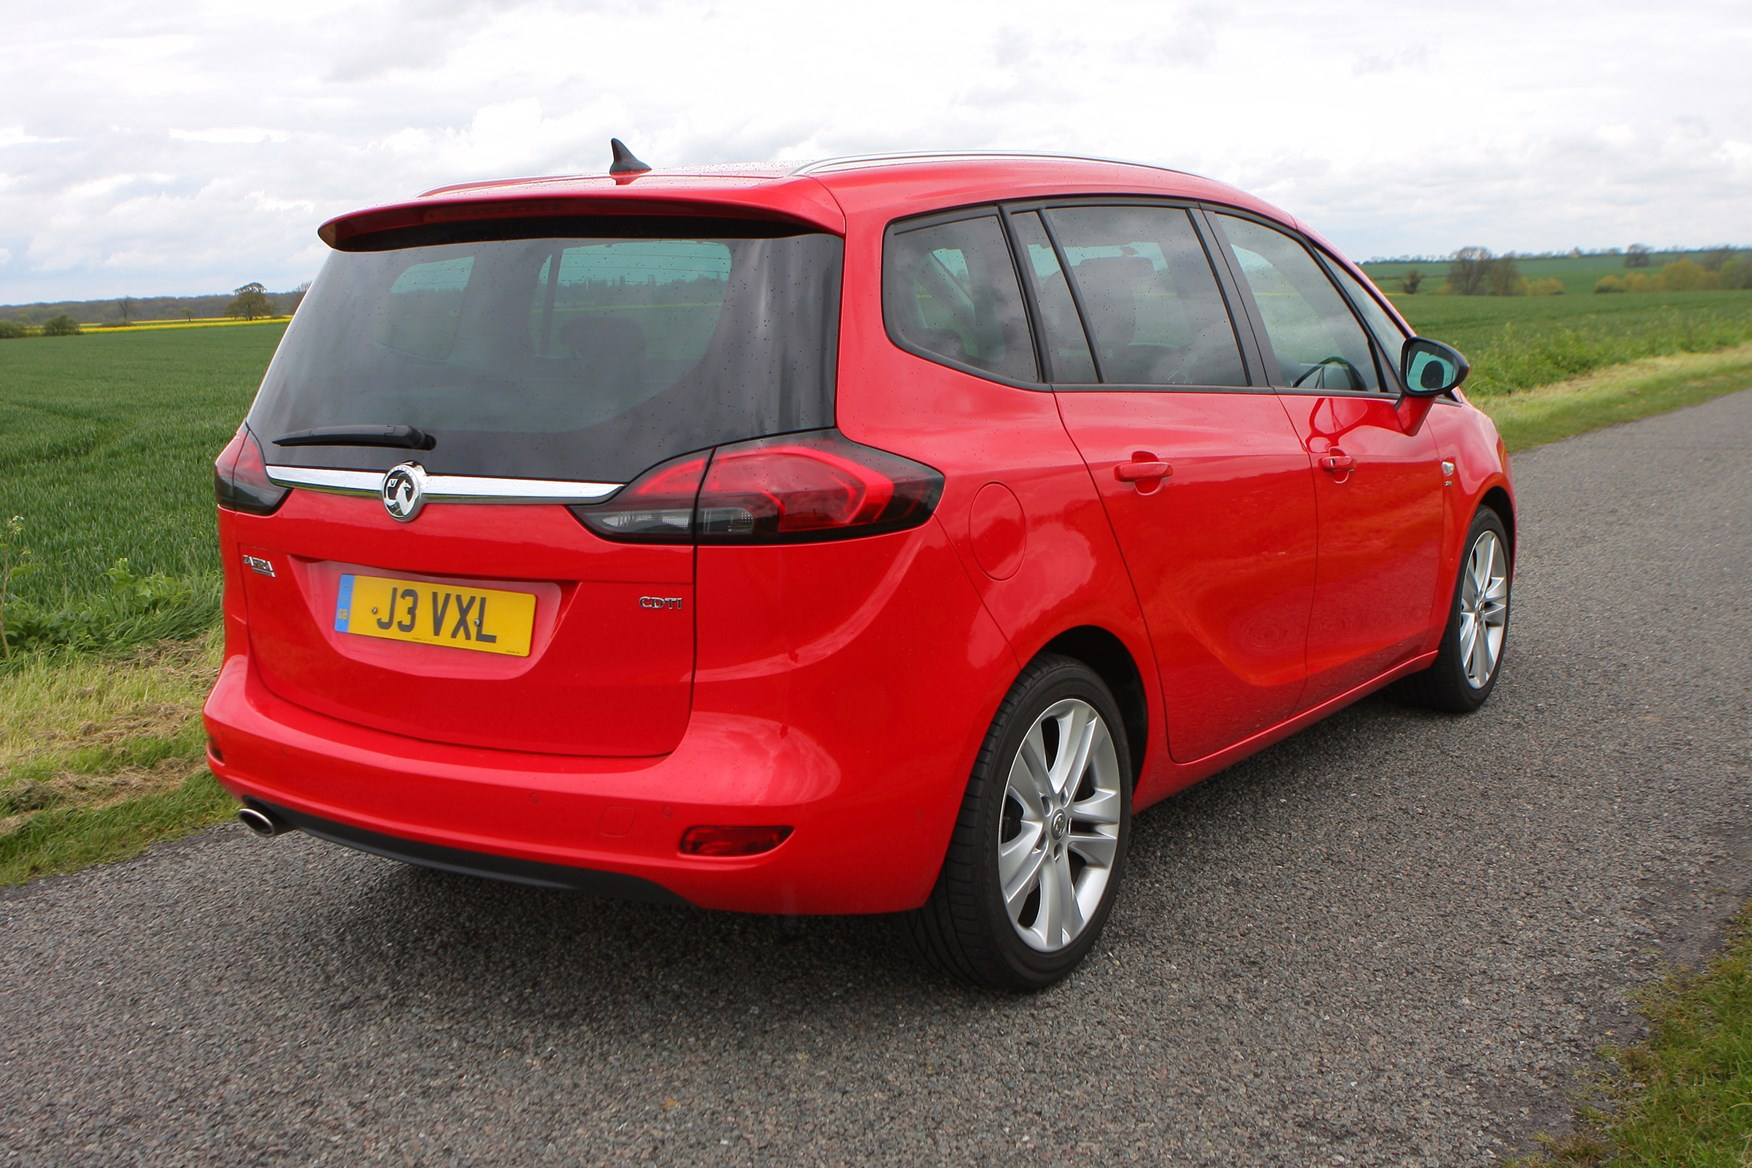 vauxhall zafira tourer review 2012 parkers. Black Bedroom Furniture Sets. Home Design Ideas